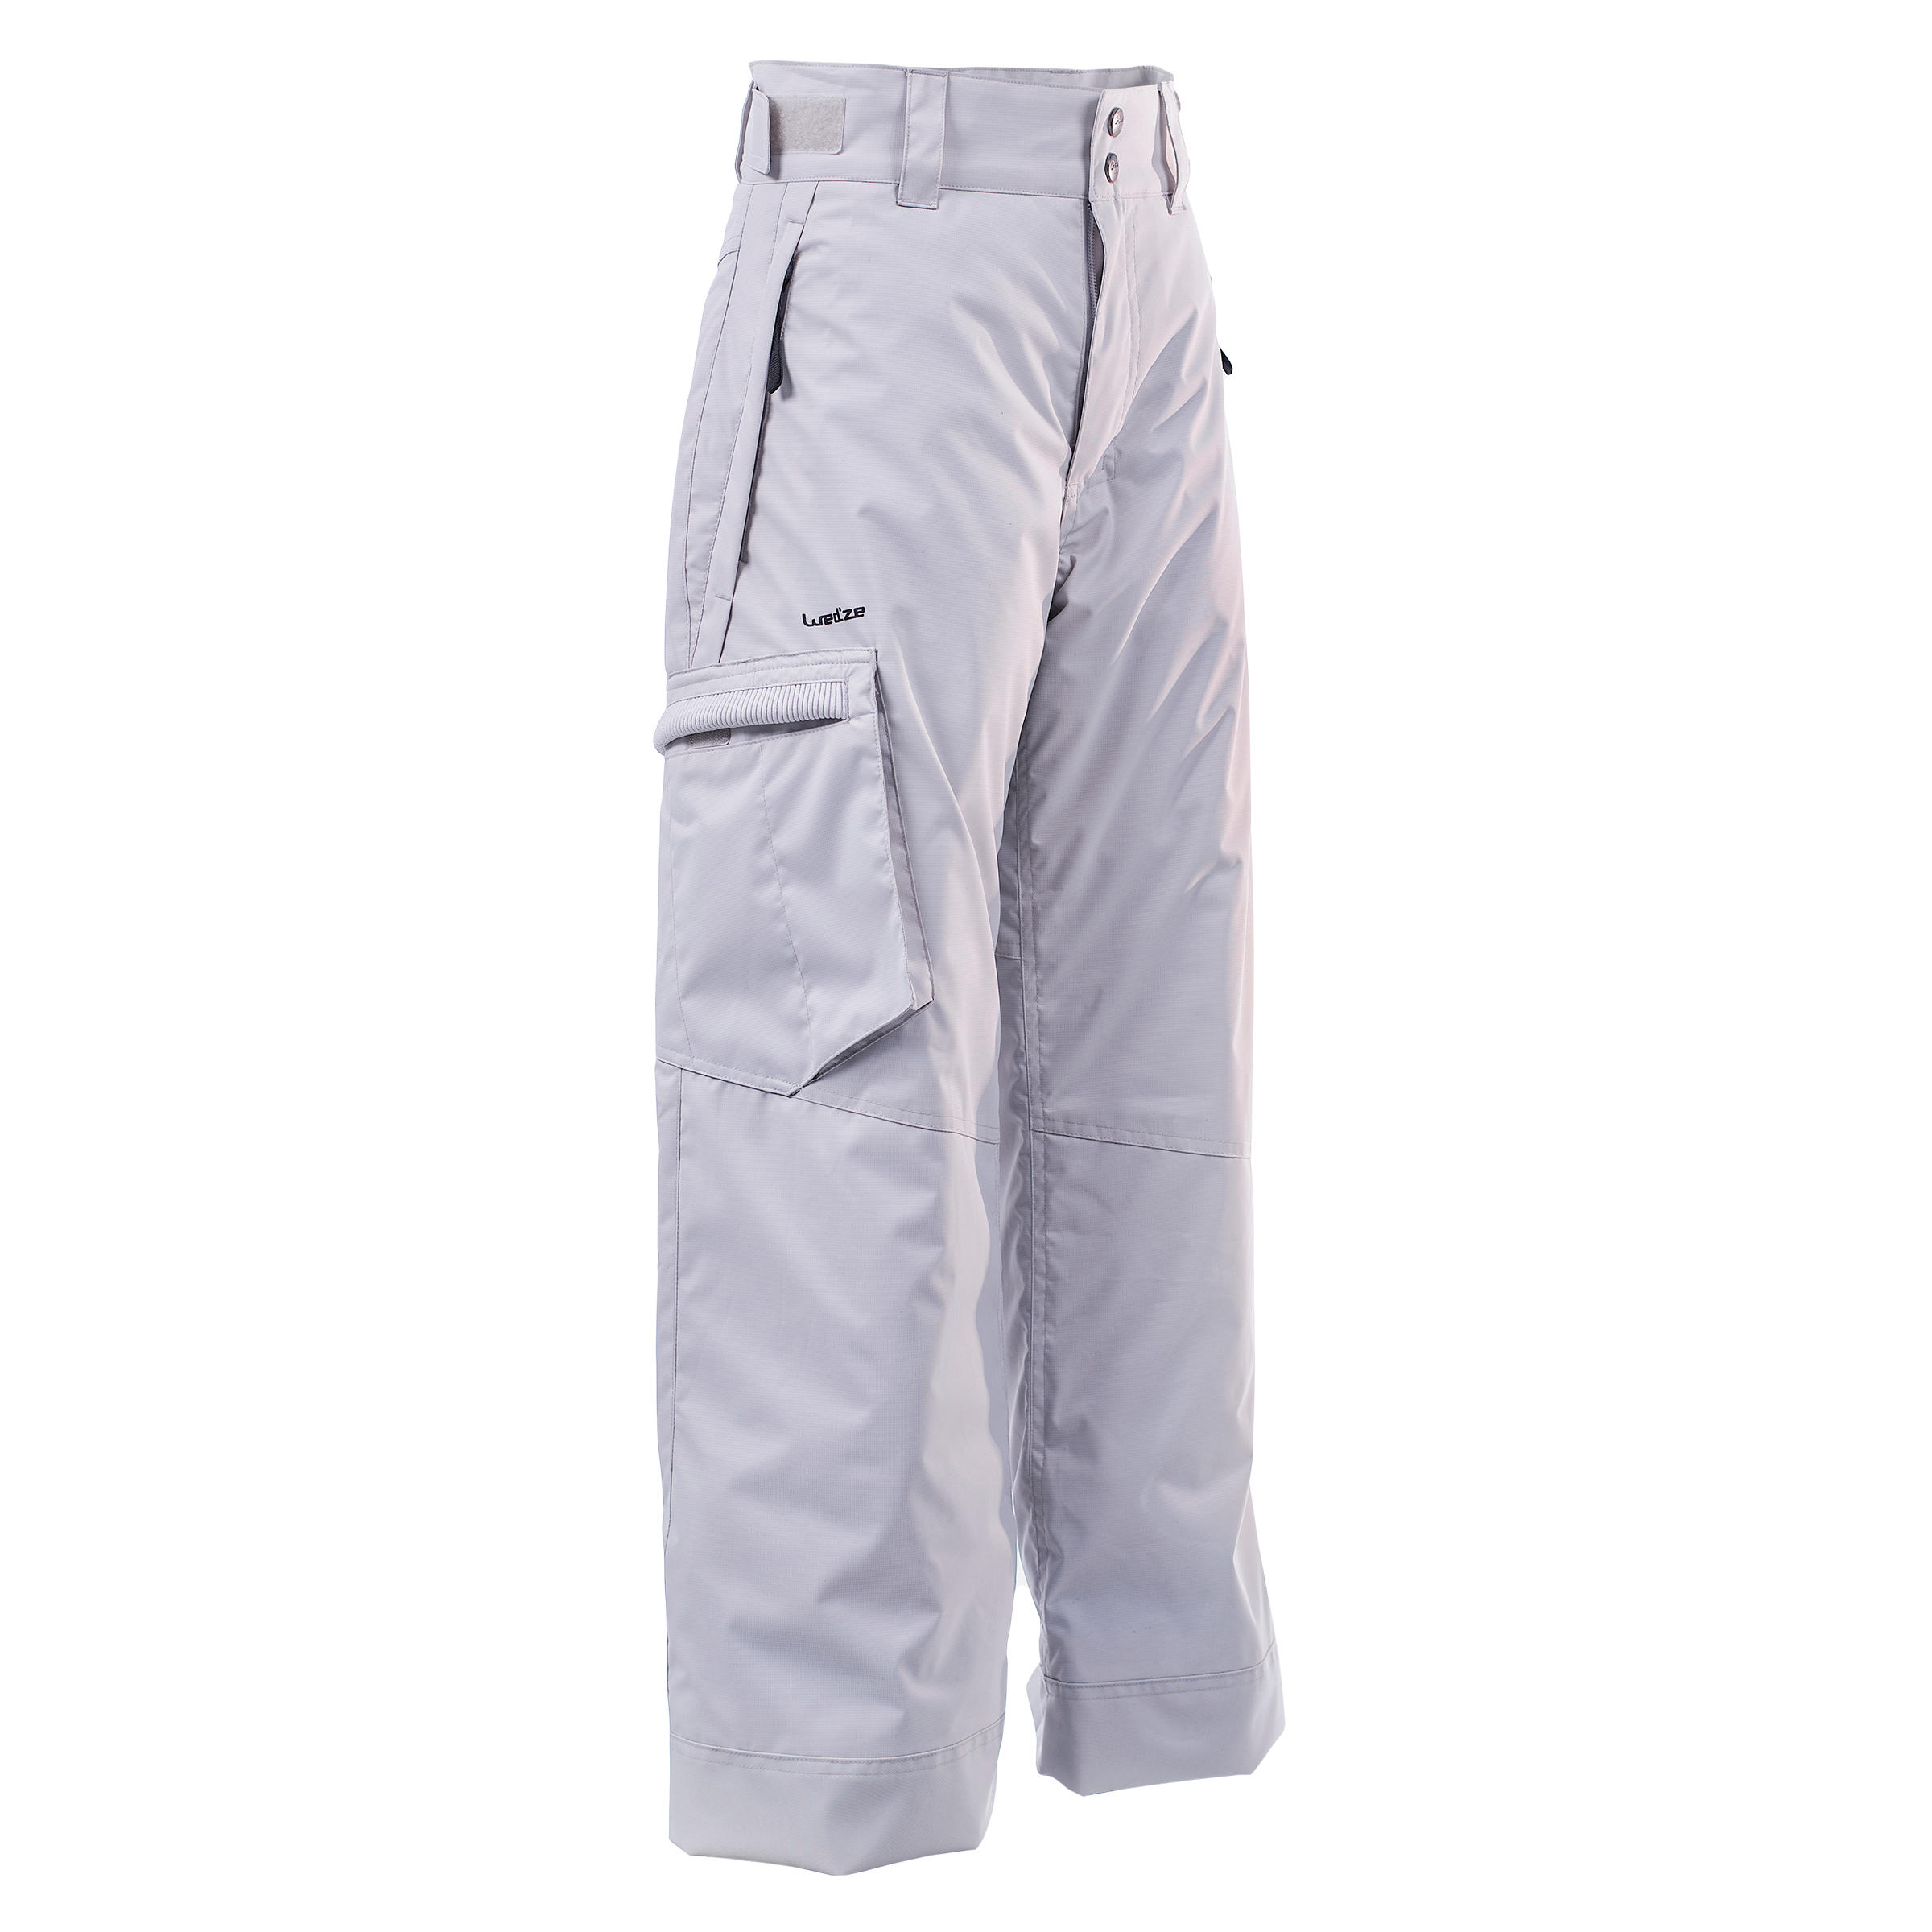 SNB PA 500 Boys' Ski and Snowboard Pants - Grey